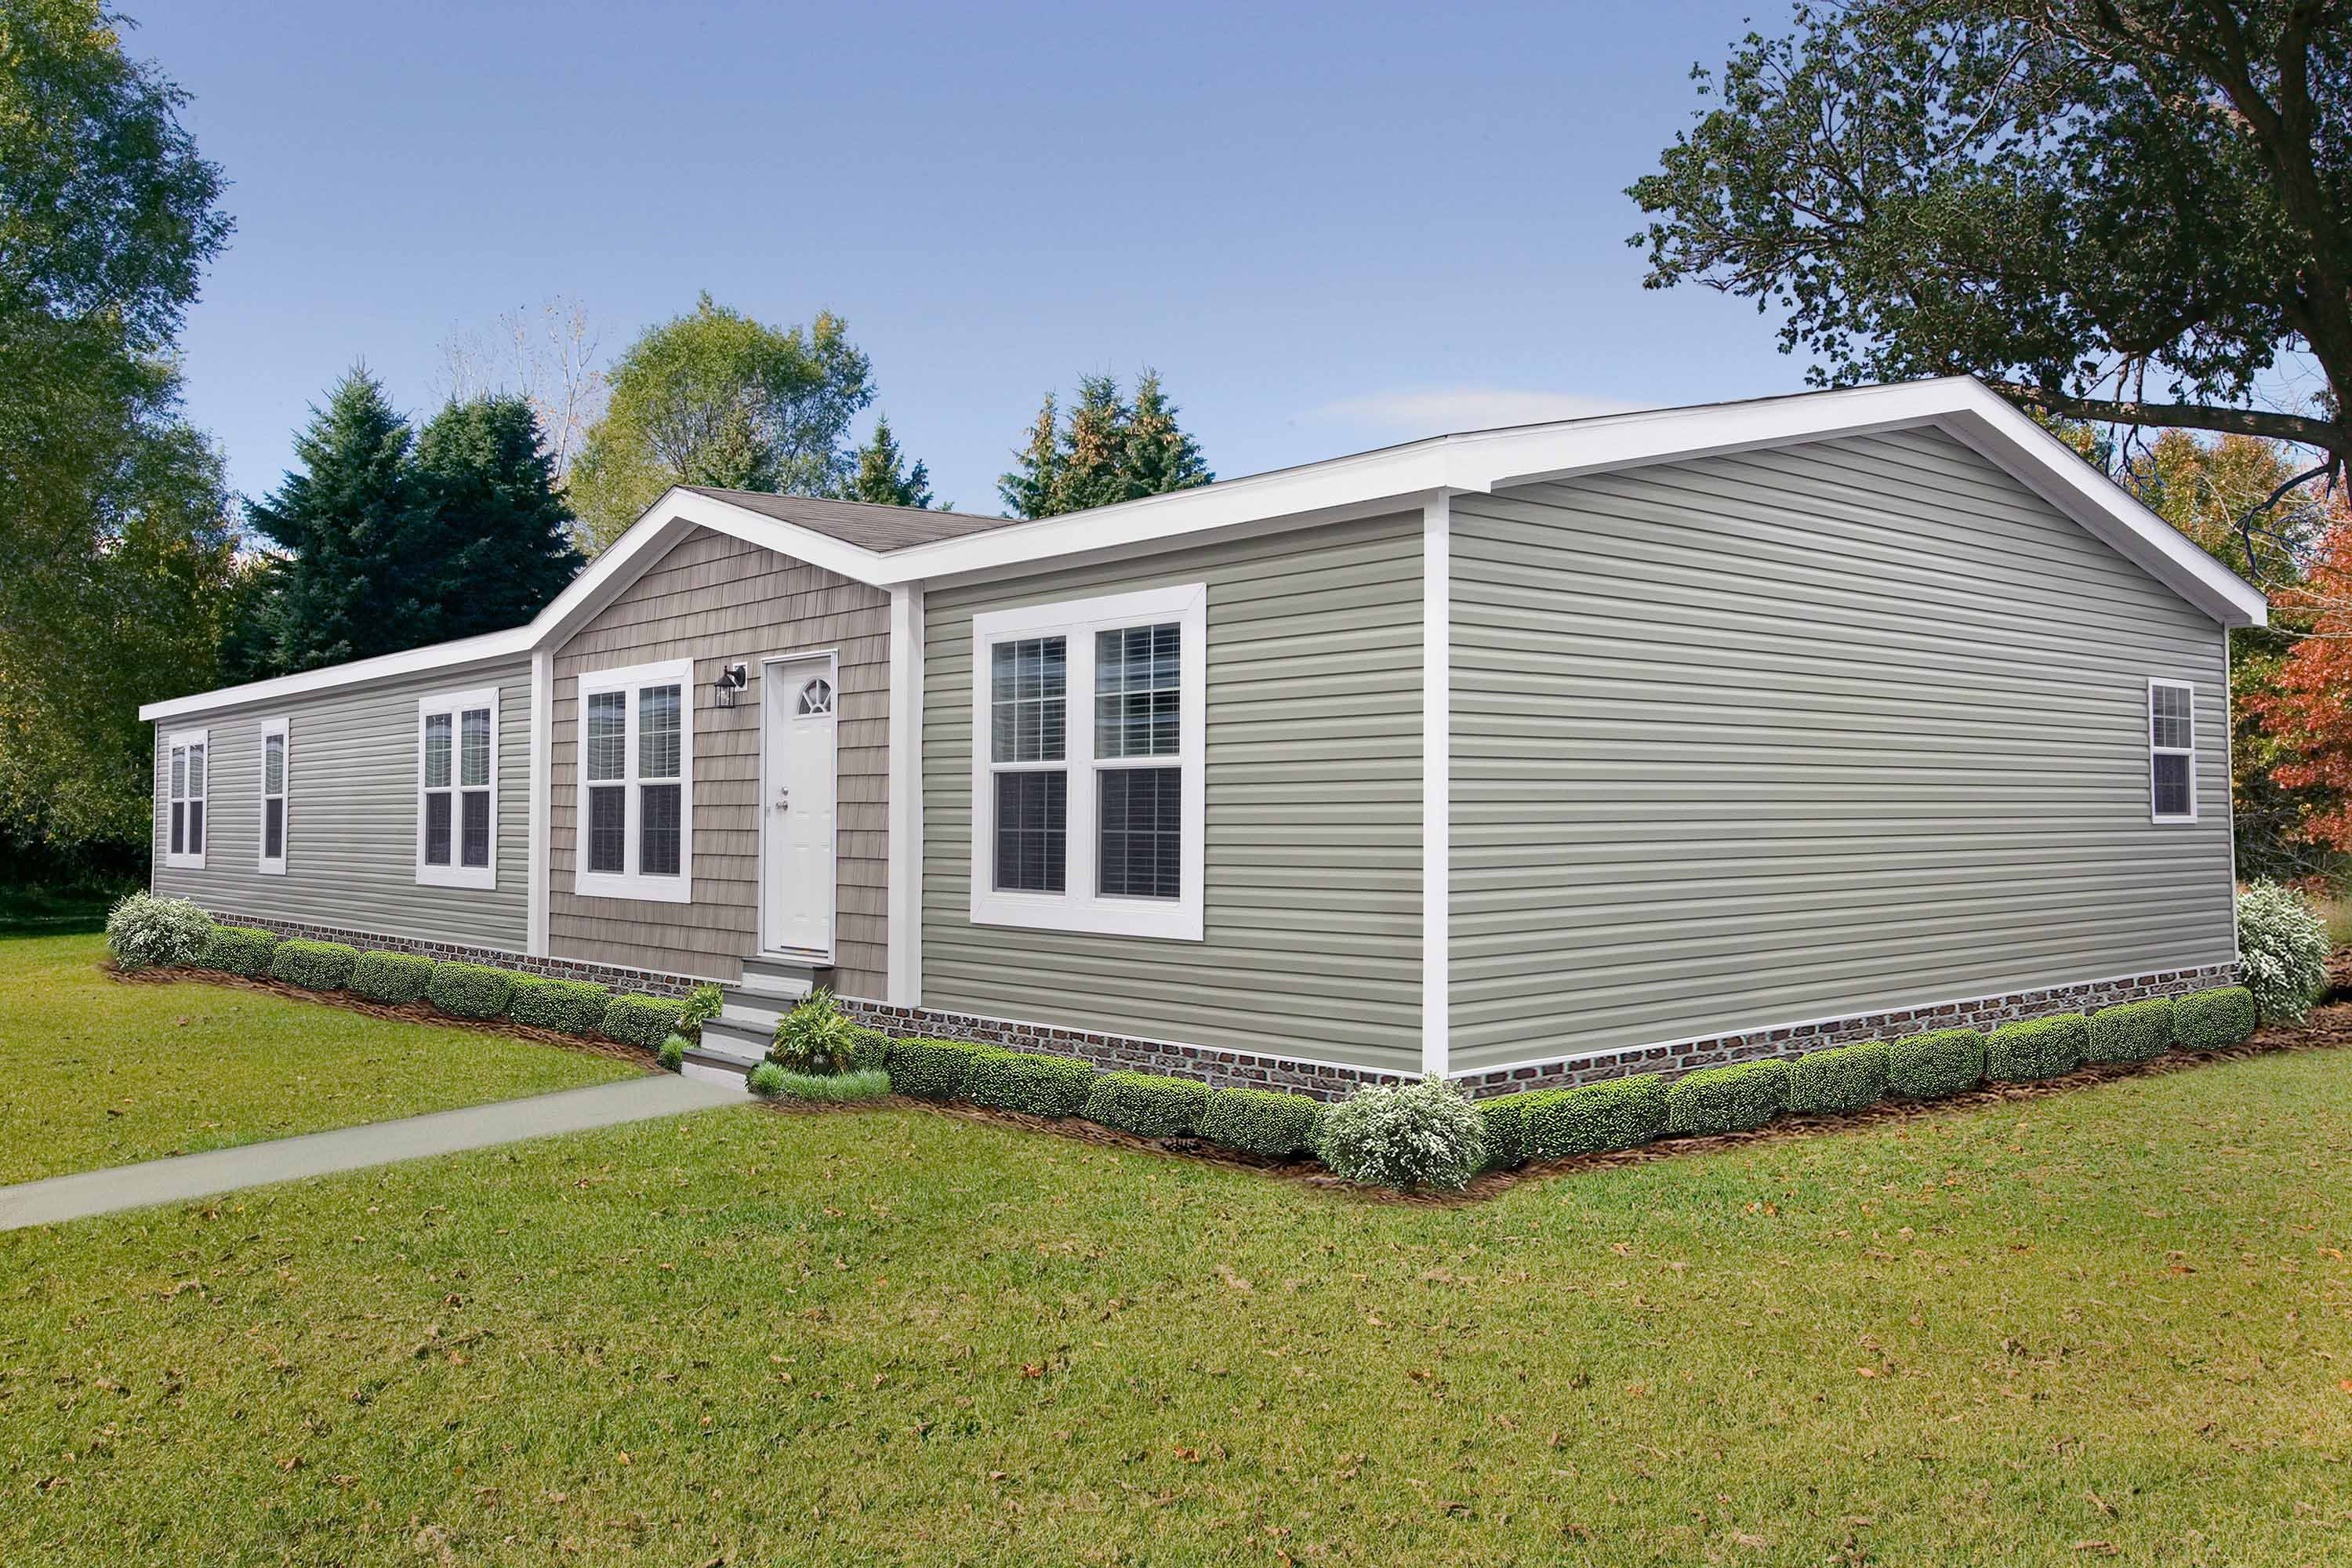 Tennessee happy homes in lawrenceburg tn manufactured - 610 exterior street bronx ny 10451 ...